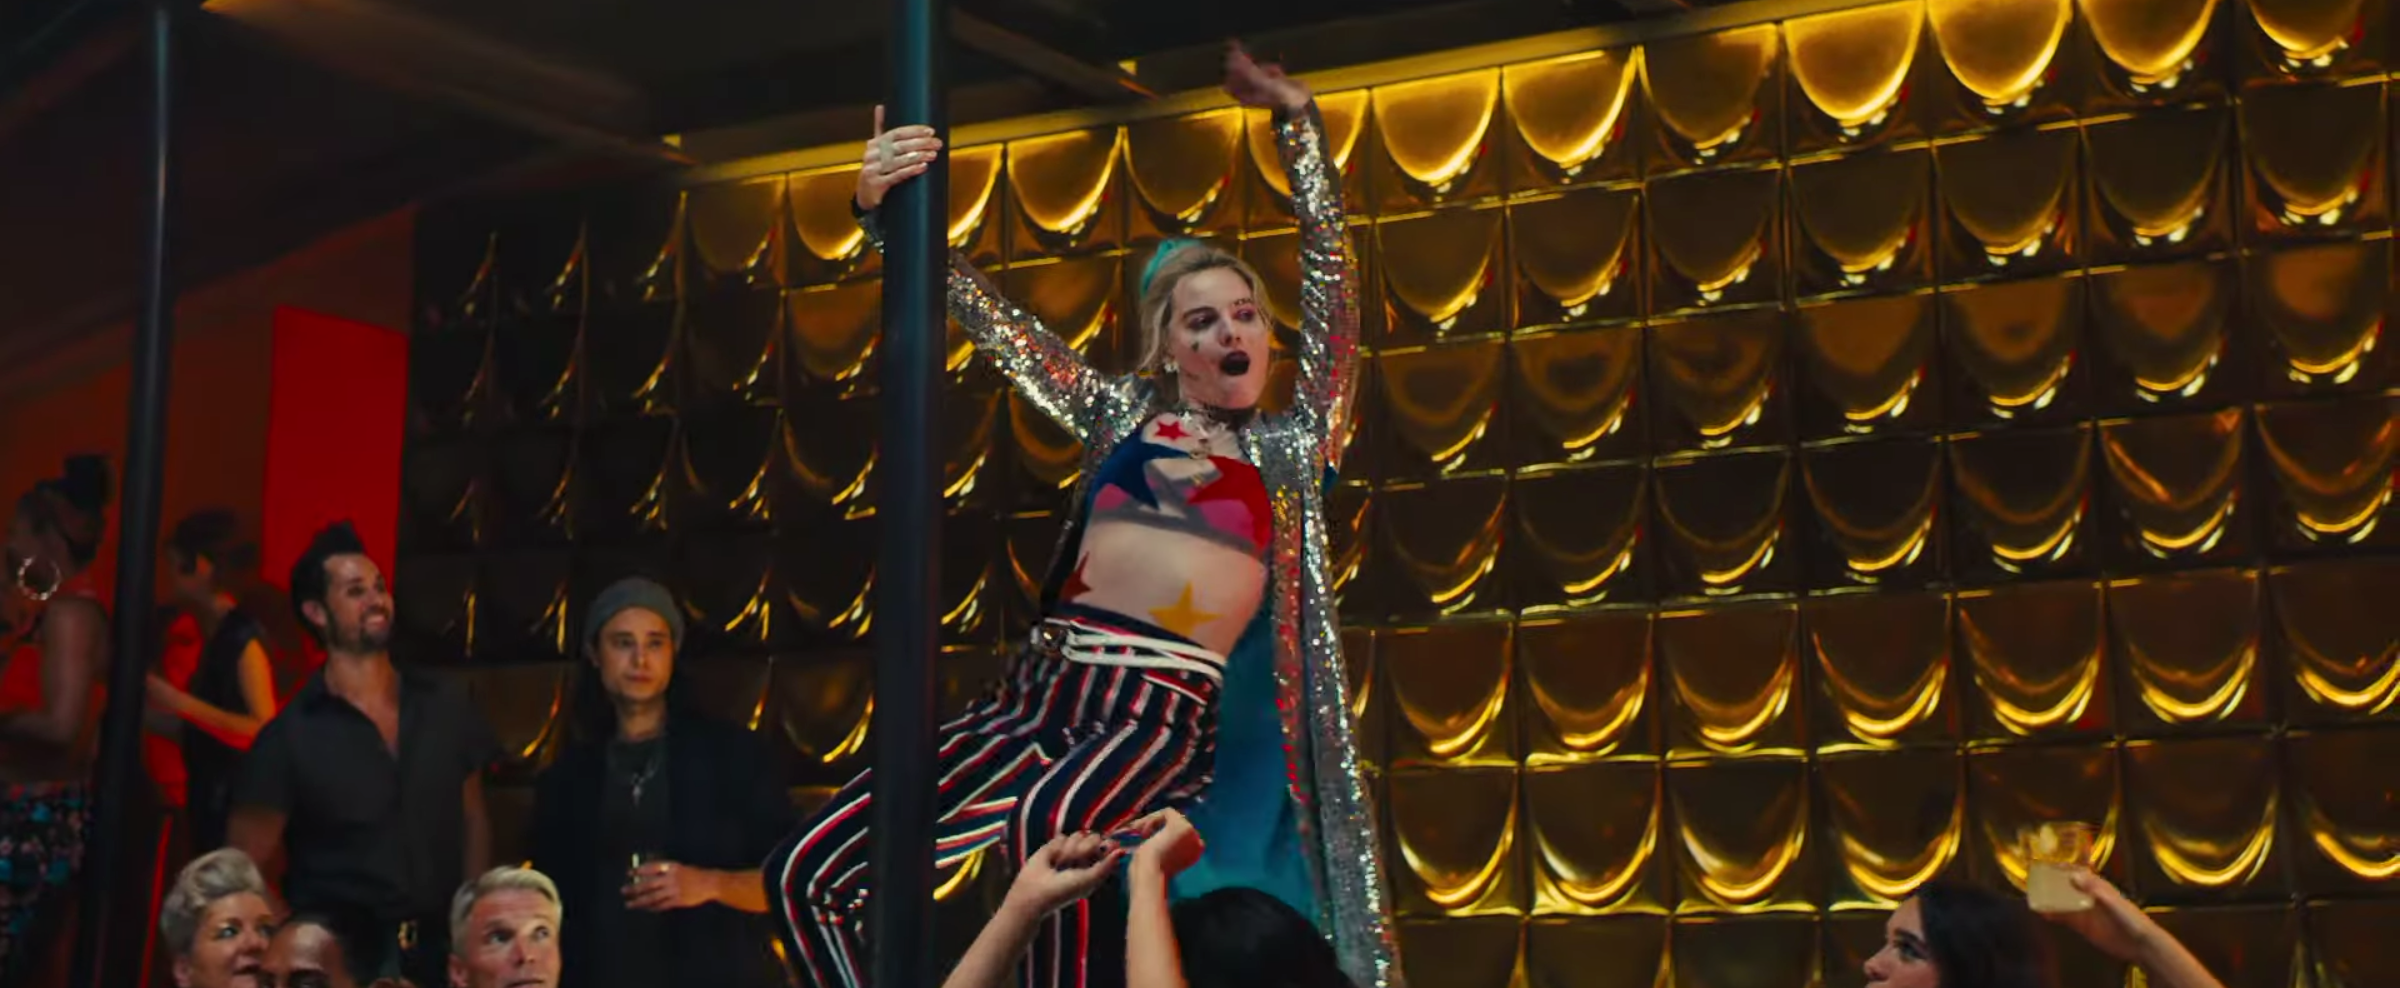 Birds Of Prey Harley Quinn S Costume Designer On Her New Look Collider